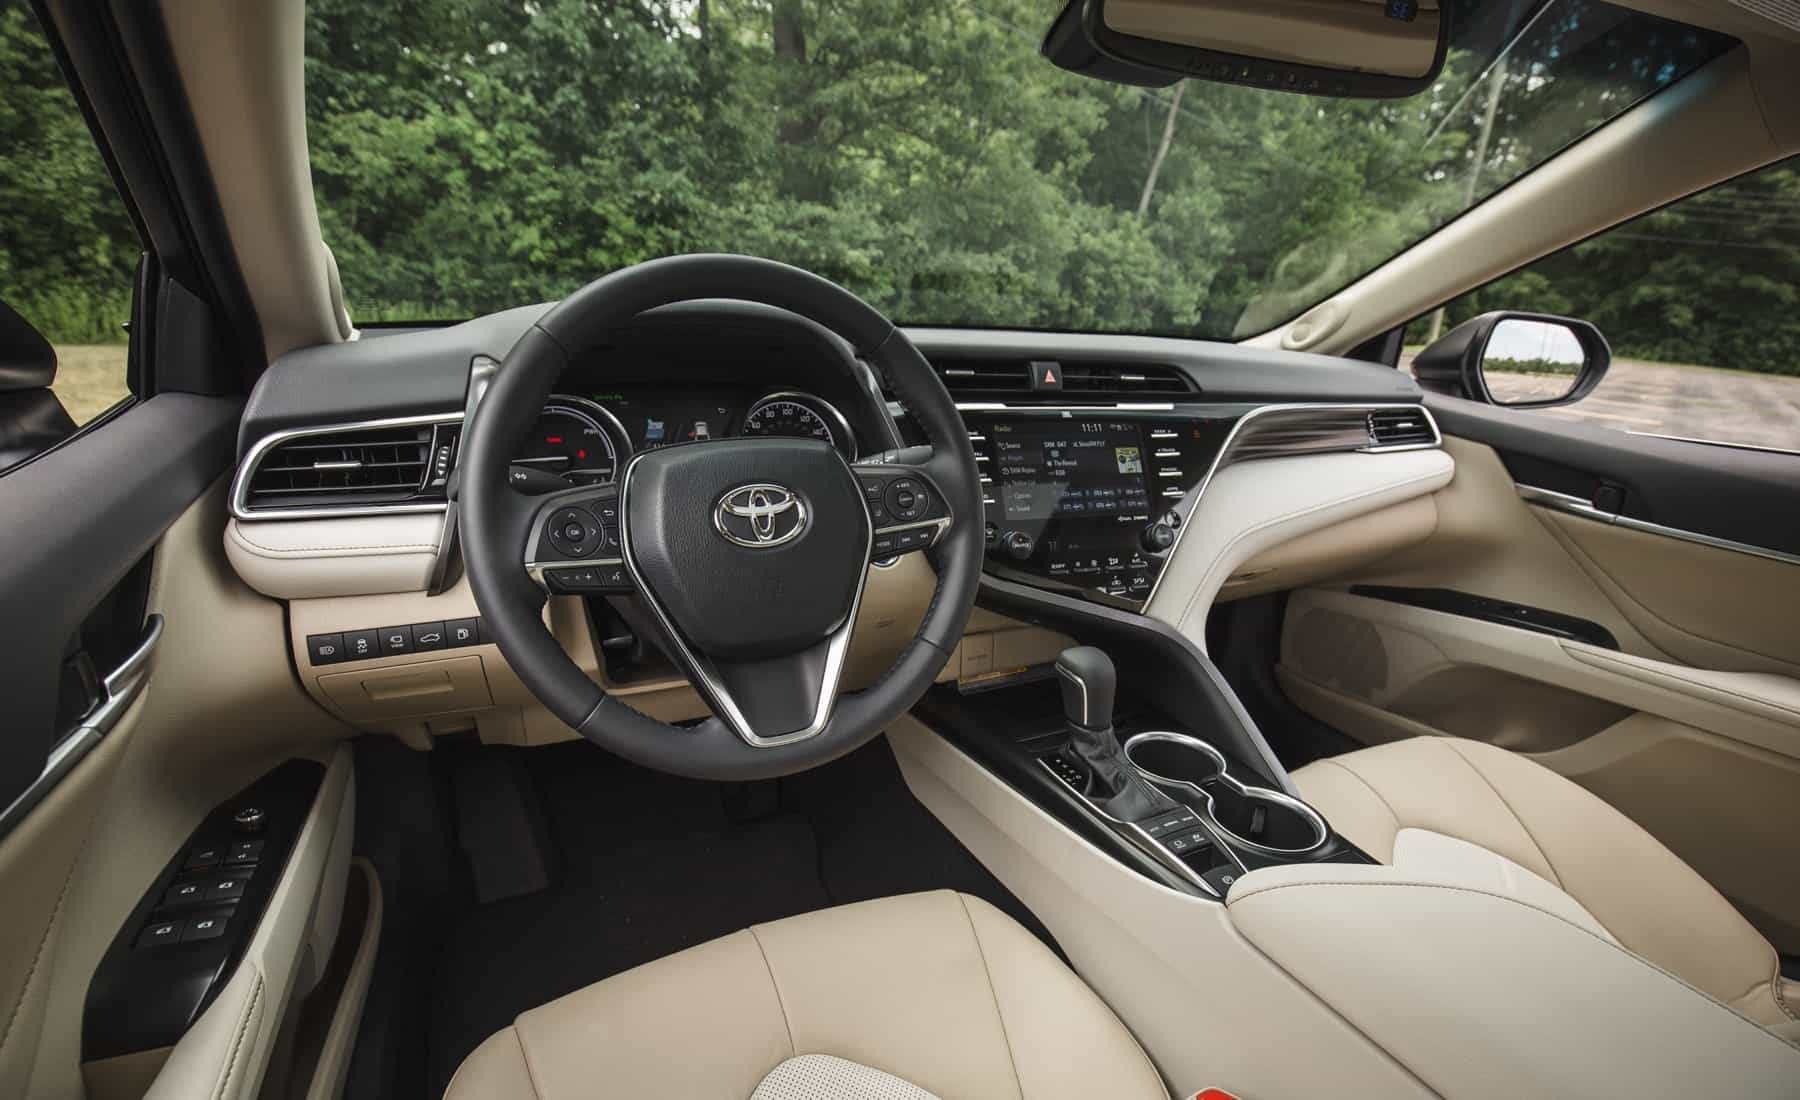 2018 Toyota Camry Hybrid XLE Interior (Photo 16 of 41)